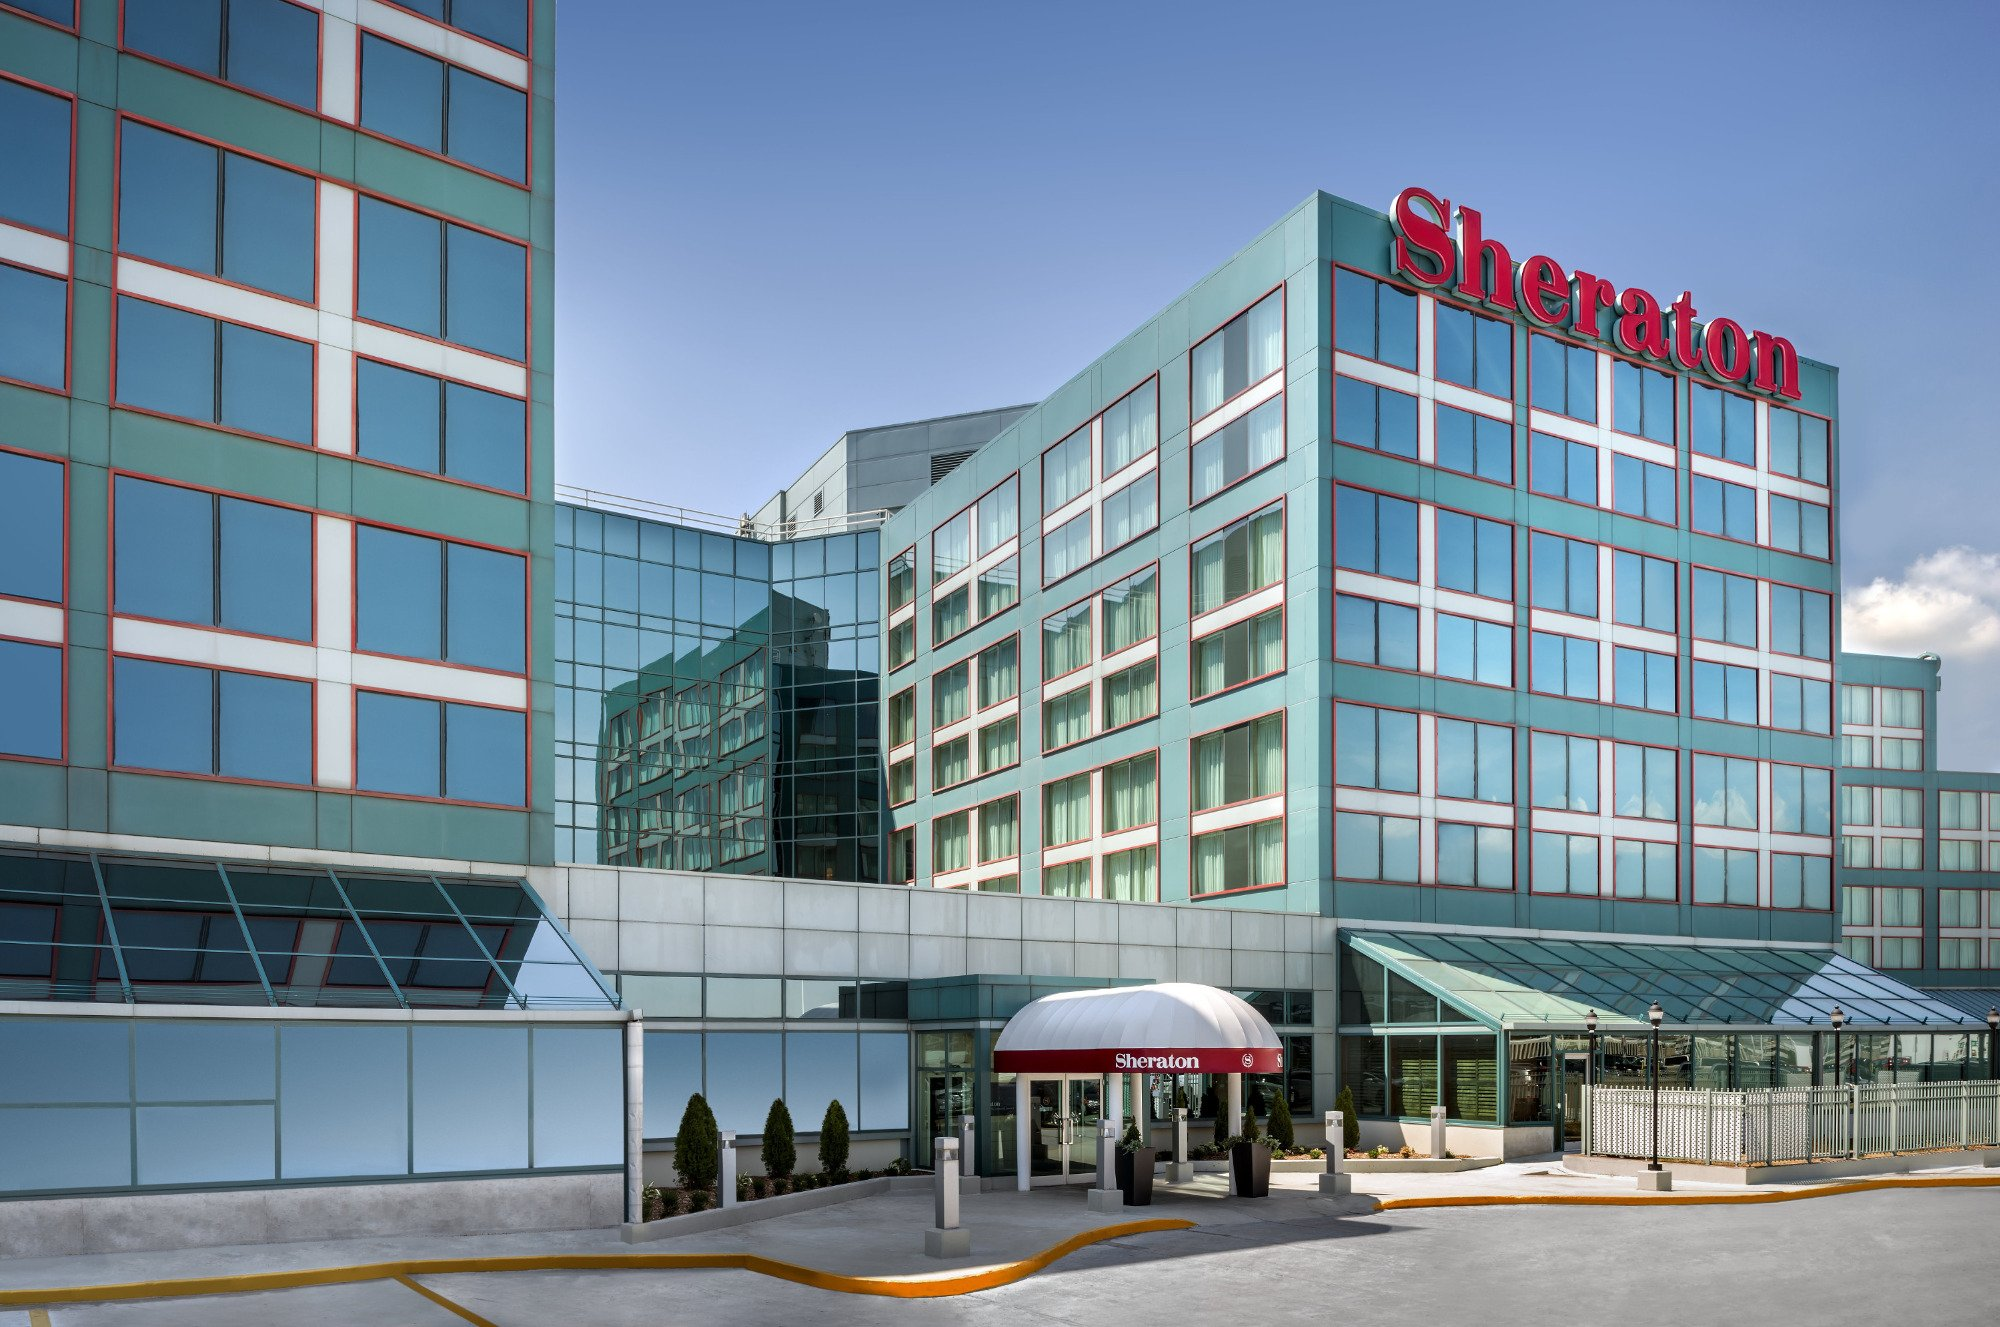 Sheraton Gateway Hotel in Toronto International Airport